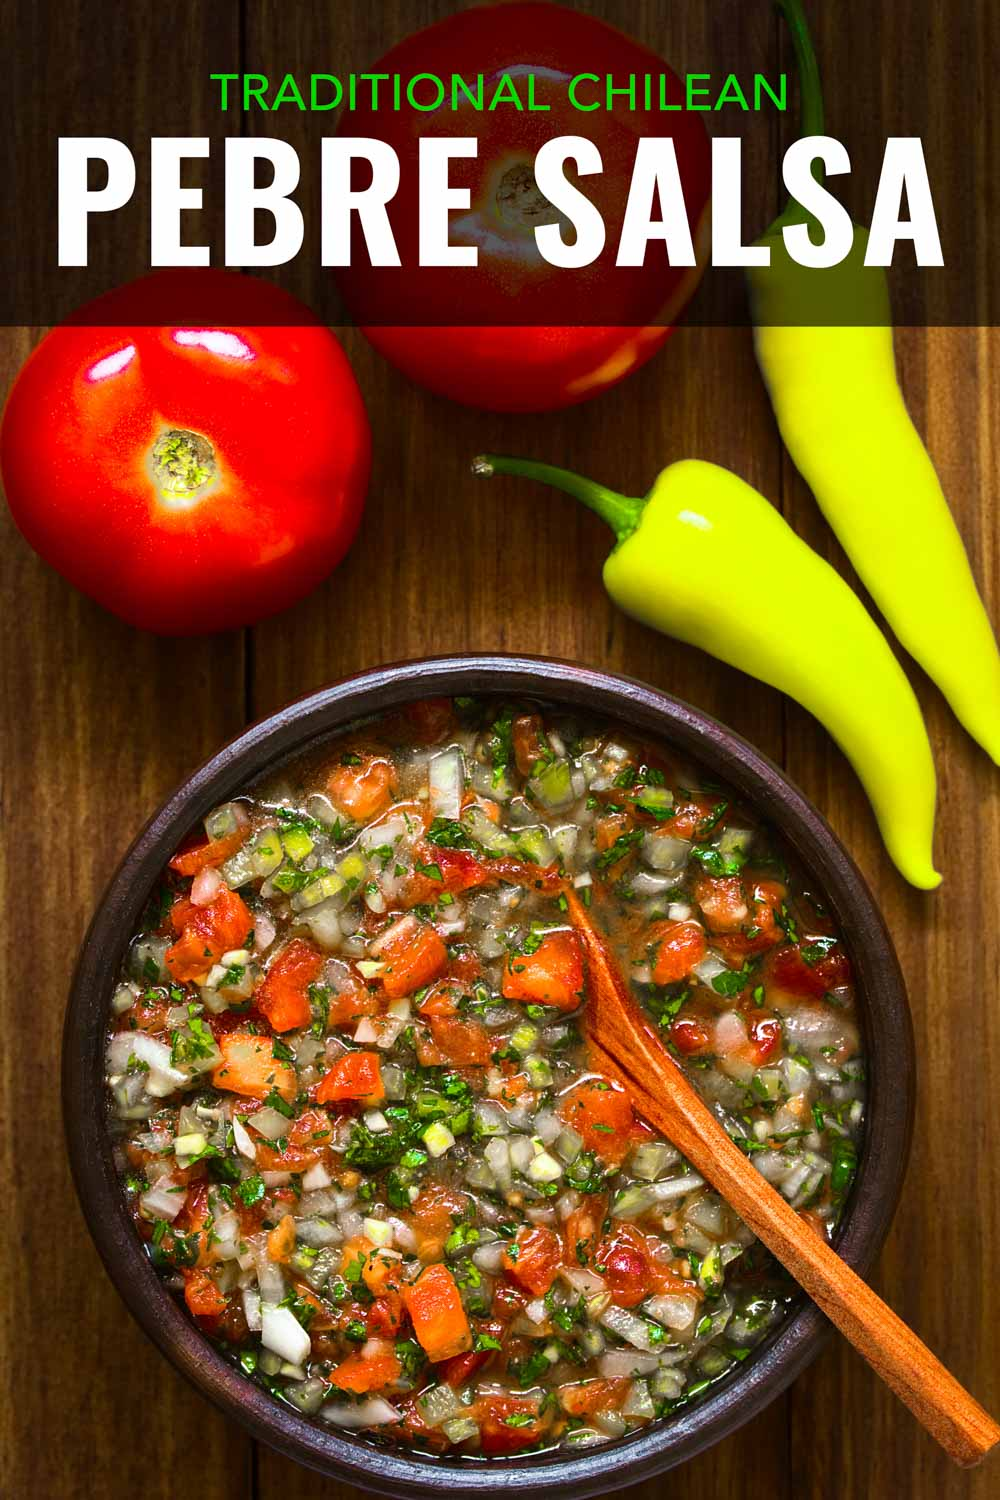 Bowl of cilantro salsa on a table with tomatoes and aji peppers